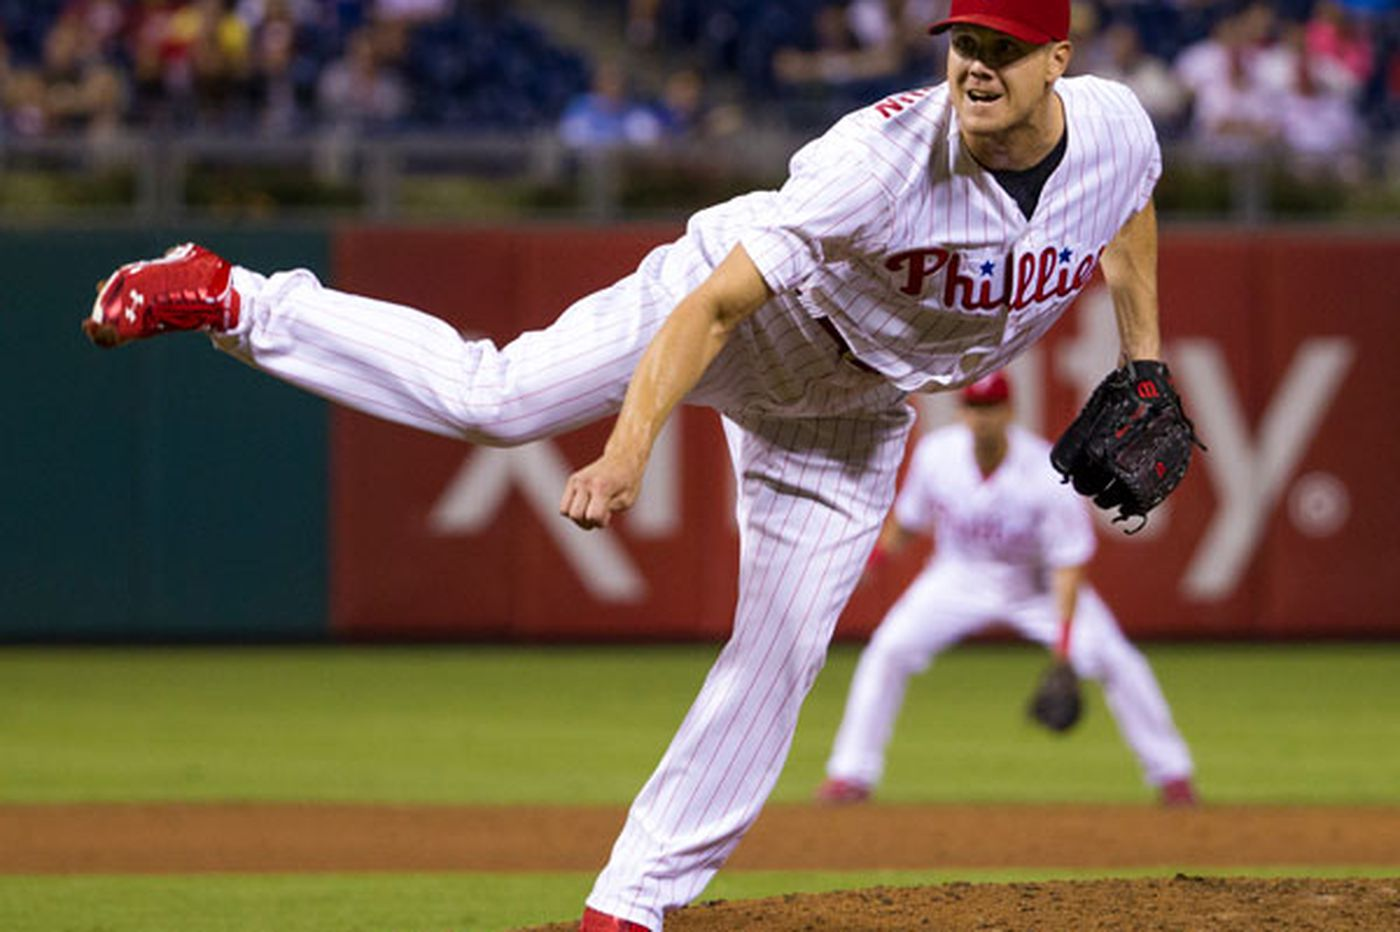 Phillies and Orioles discussed Jonathan Papelbon